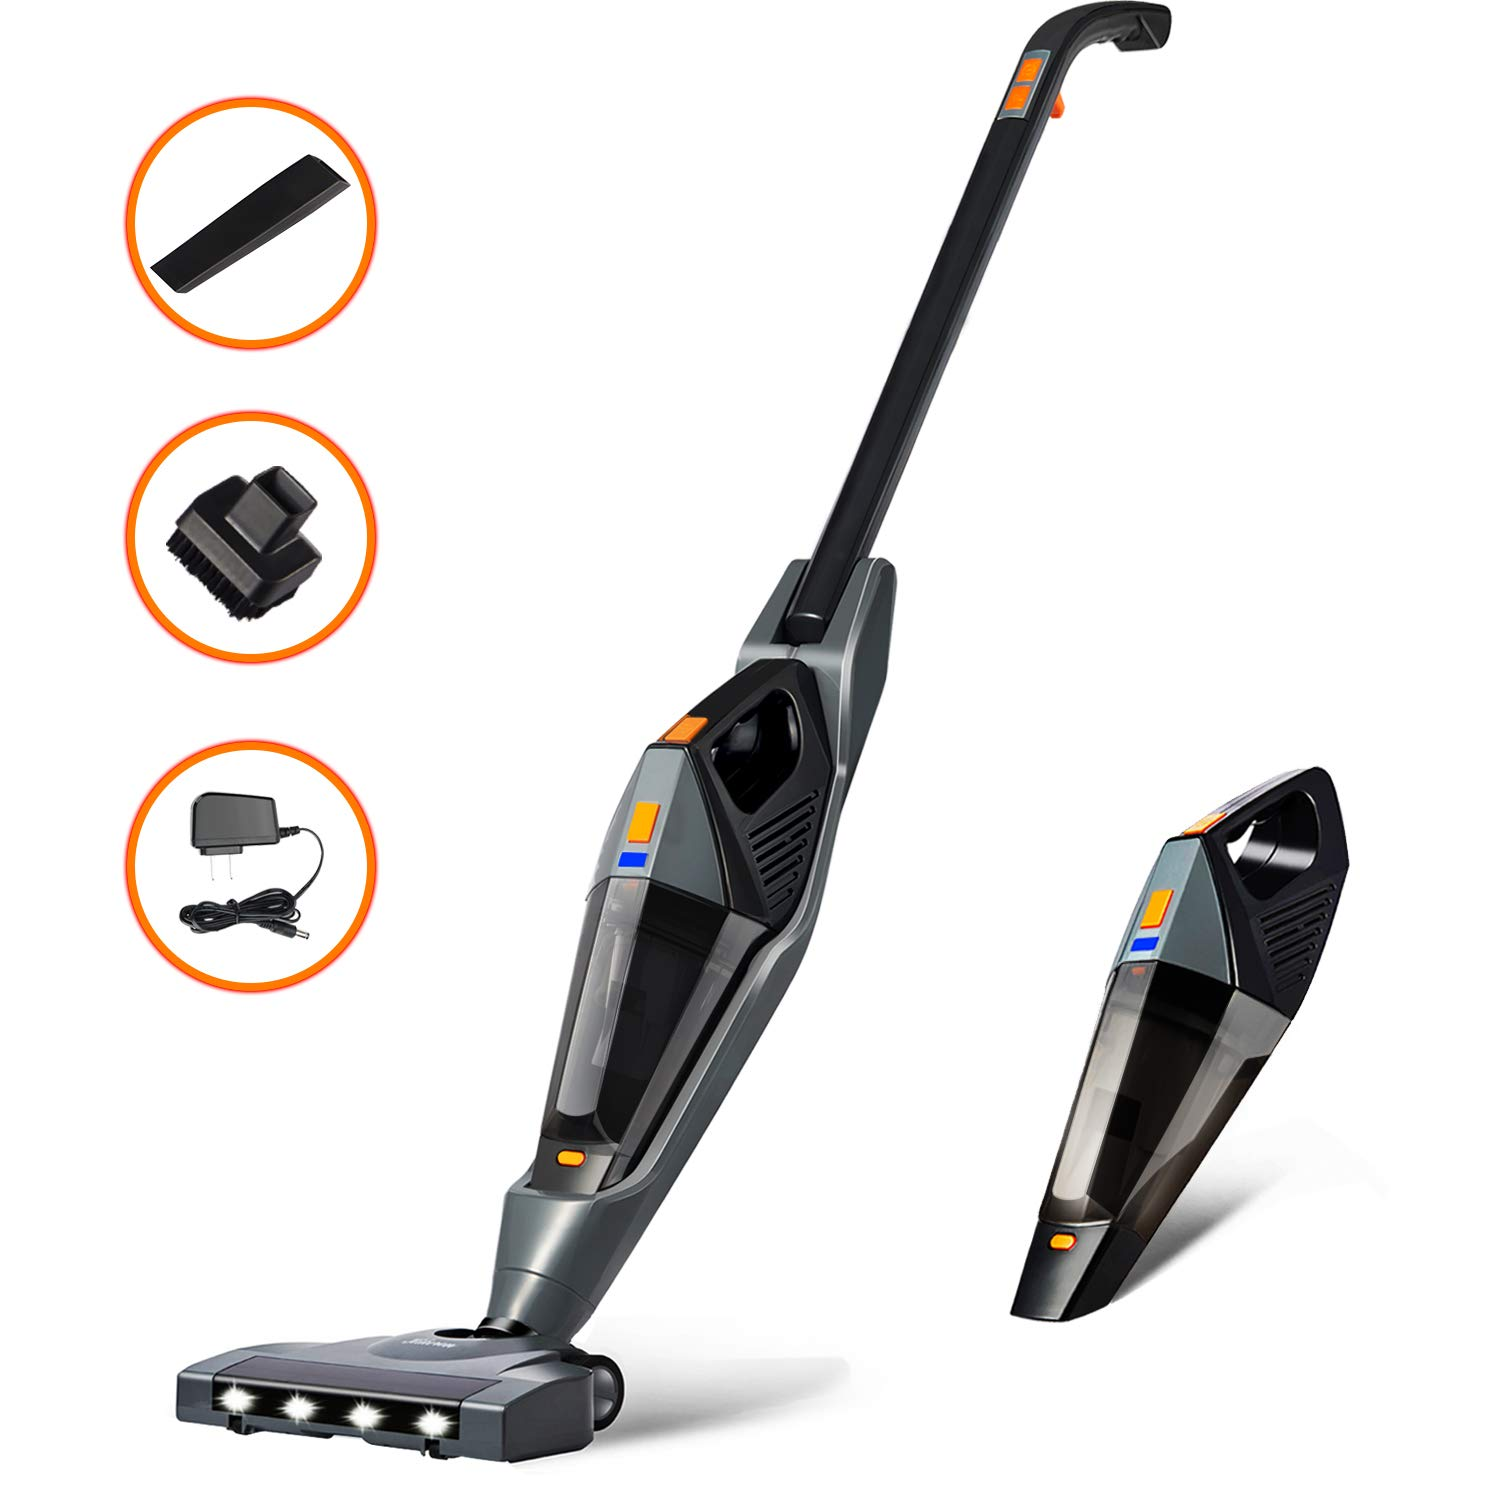 Cordless Vacuum, Hikeren 12000 PA Stick Vacuum Cleaner, 2 in 1 Lightweight Rechargeable Bagless Stick and Handheld Vacuum for Carpet Hardwood Floor Pet Hair